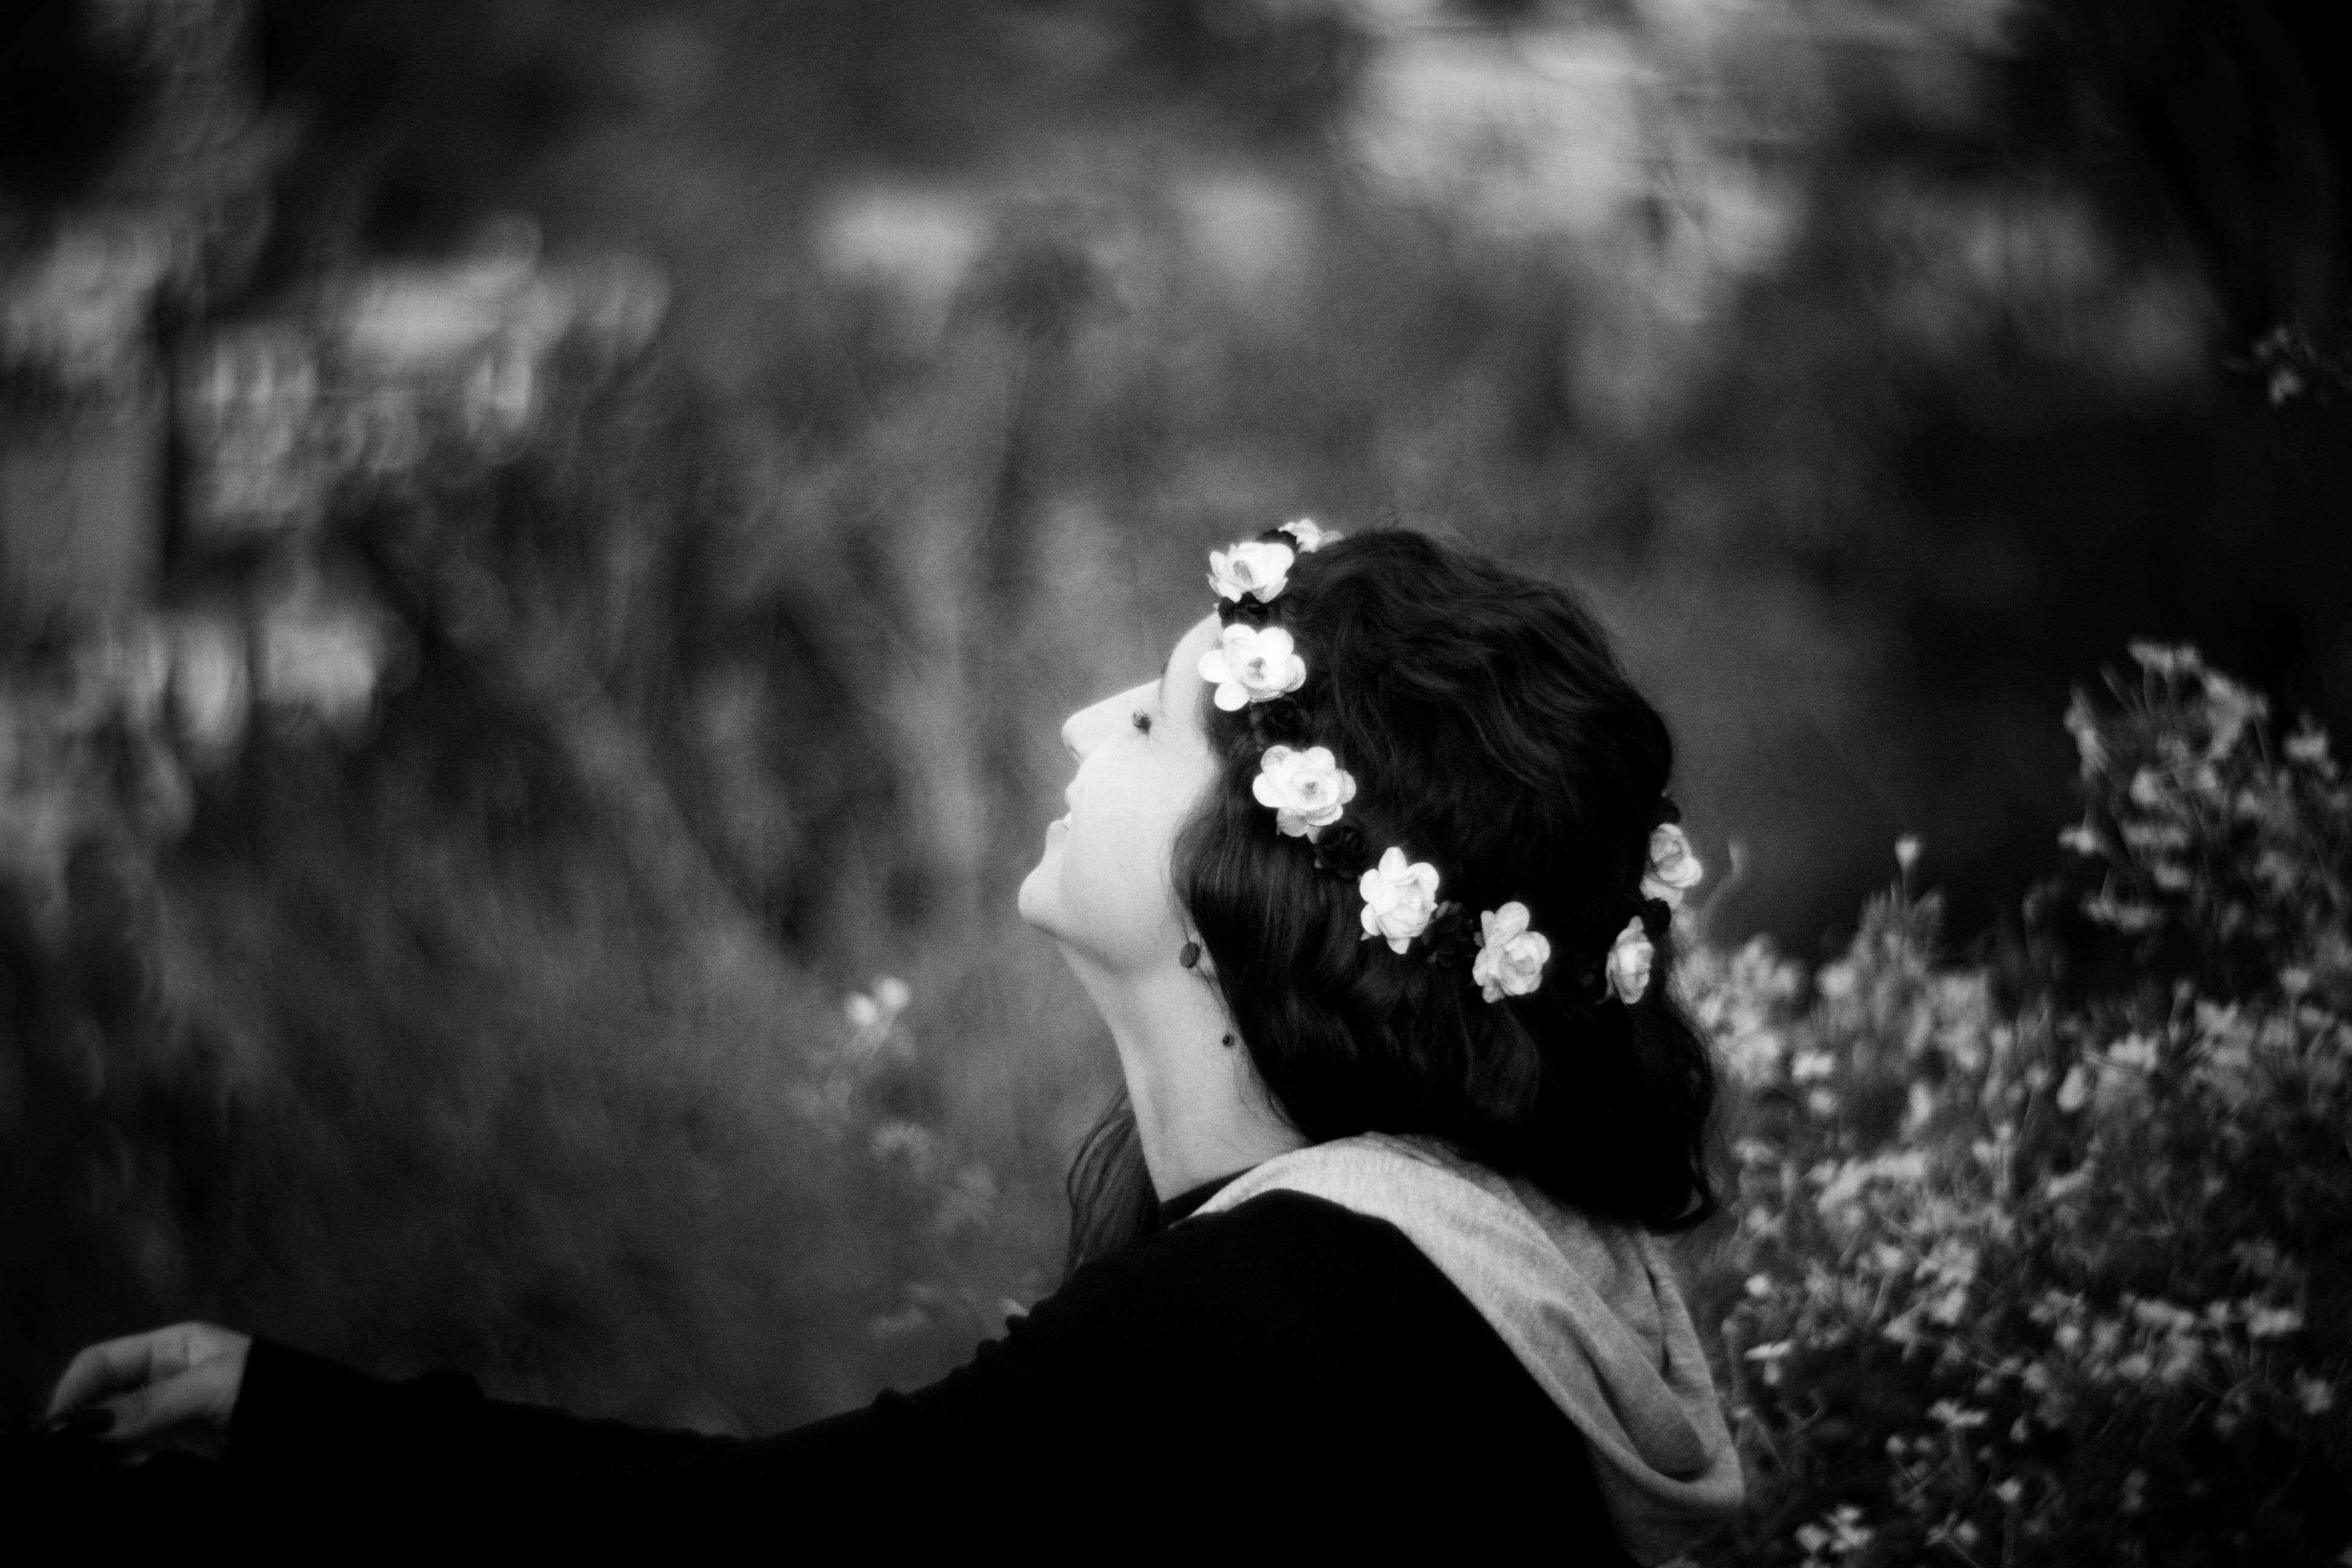 grayscale photograph of woman in garden